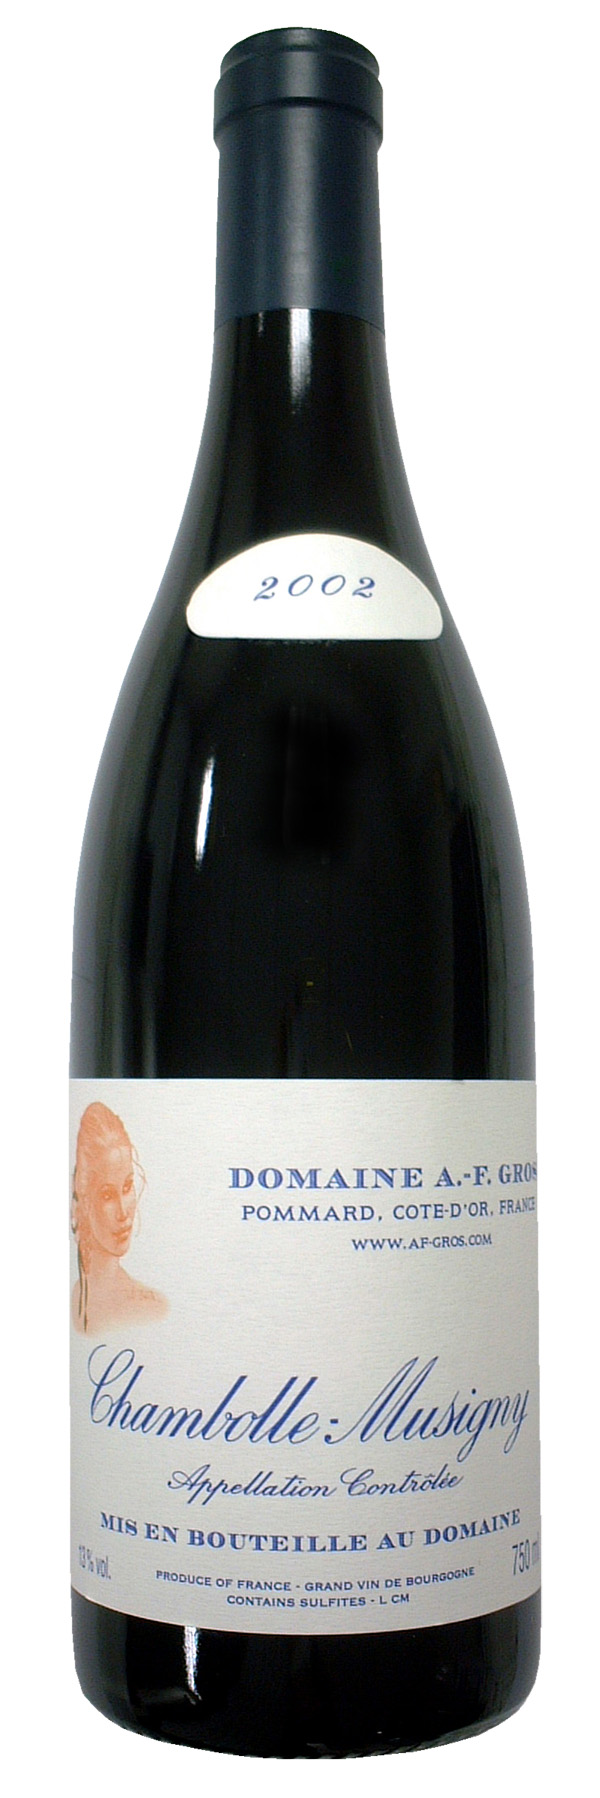 2002 Chambolle Musigny_Domaine AF Gros_small.jpg